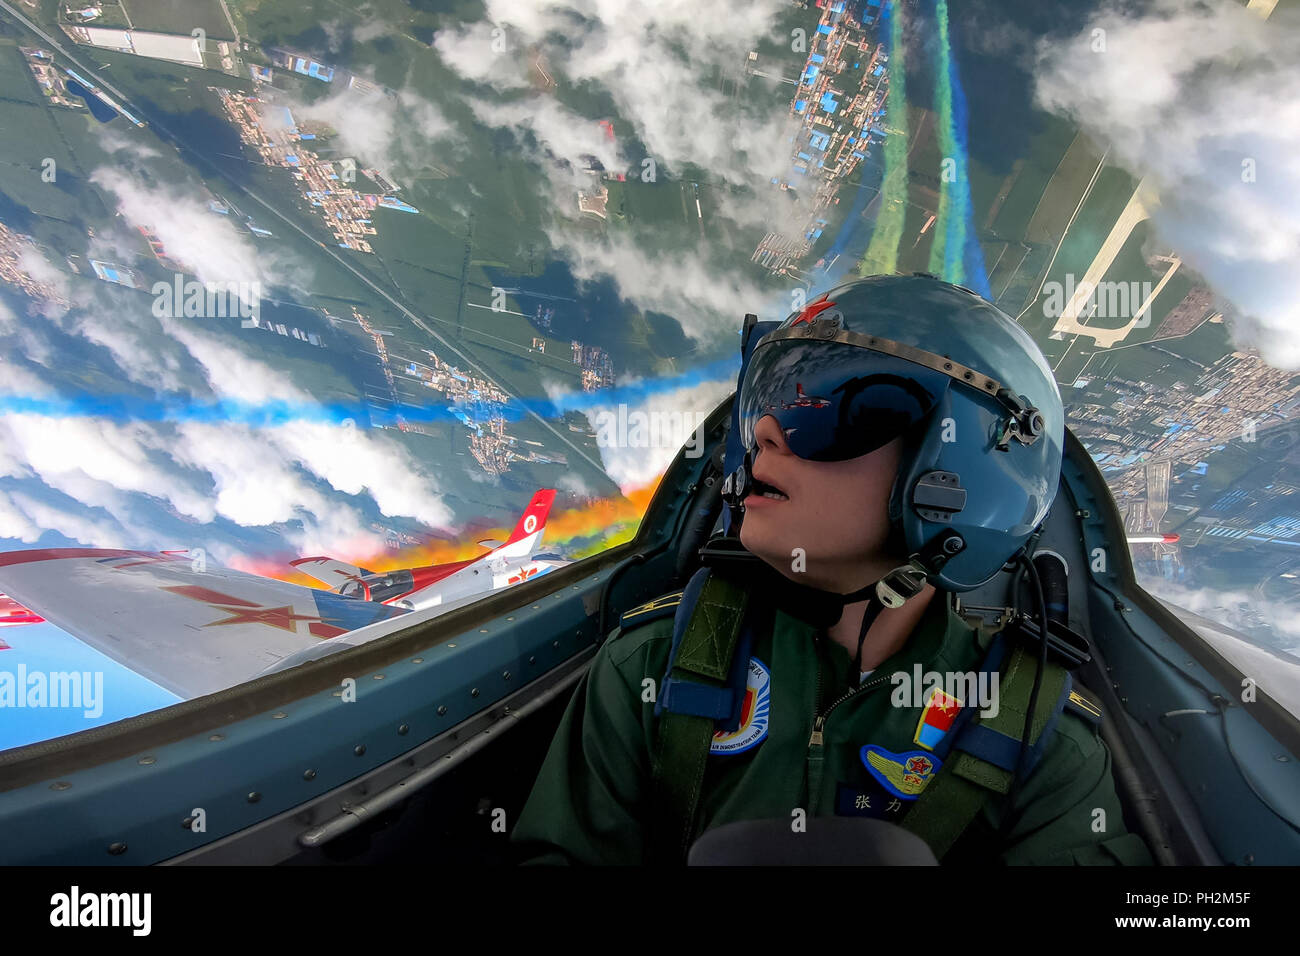 Changchun, China's Jilin Province. 30th Aug, 2018. A pilot of Red Falcon Air Demonstration Team performs during an activity of opening day at the Aviation University of Air Forces in Changchun, capital of northeast China's Jilin Province, Aug. 30, 2018. Credit: Yang Pan/Xinhua/Alamy Live News - Stock Image